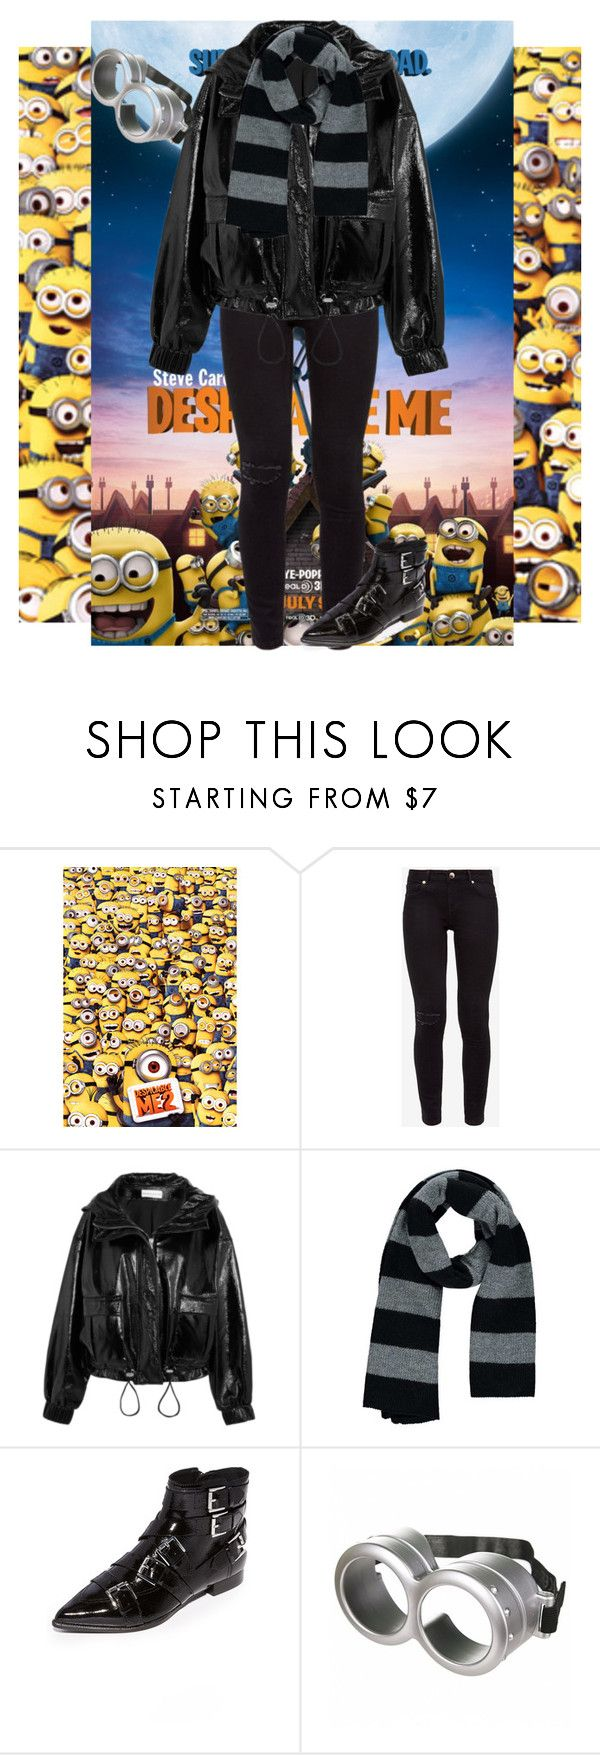 """26.1"" by blackrose15orchiday ❤ liked on Polyvore featuring Despicable Me, Ted Baker, Wanda Nylon, Forever 21 and Ash"